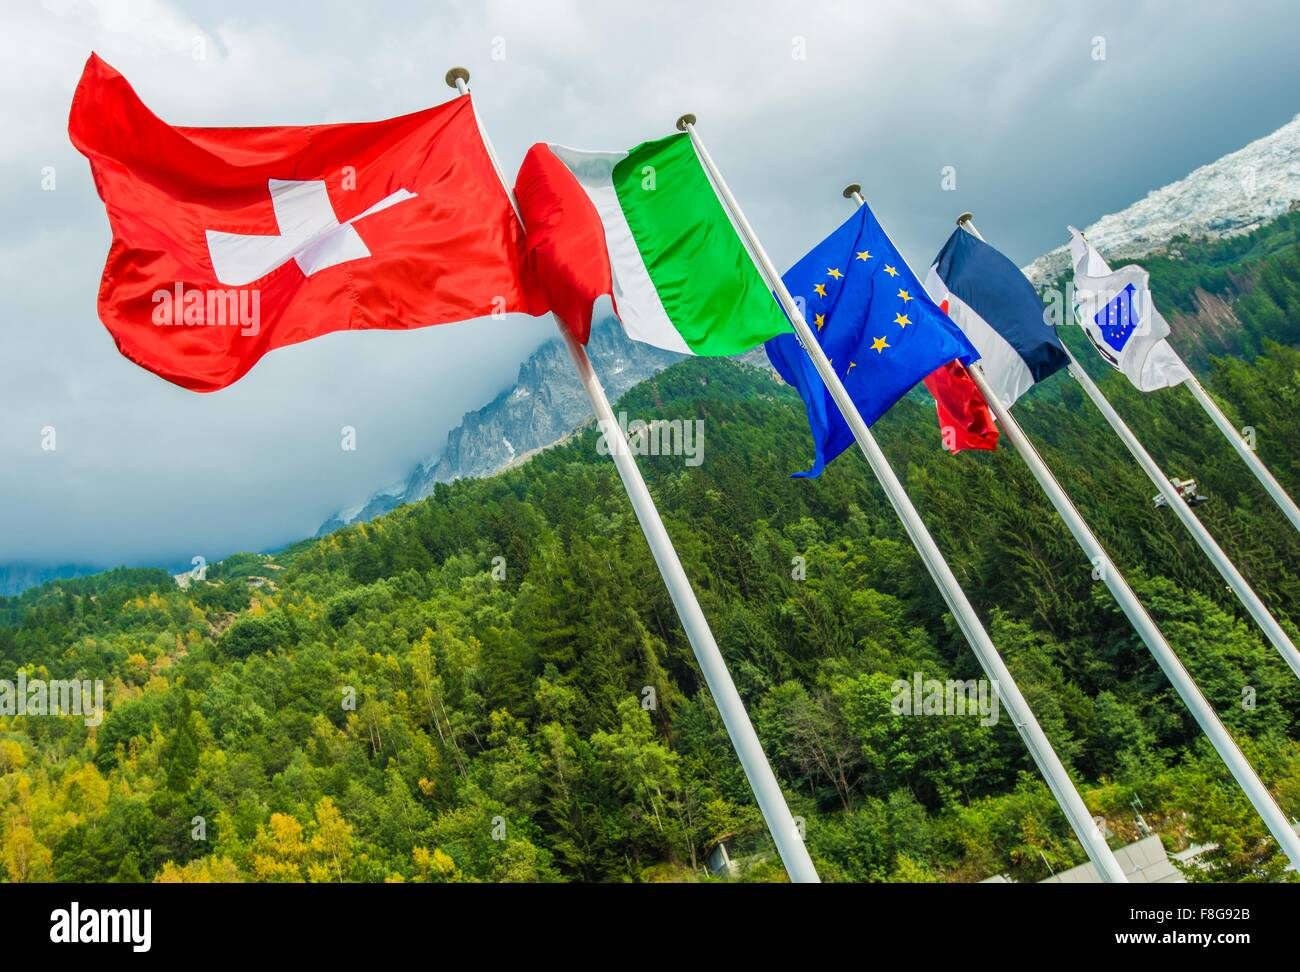 European Union National Flags. Switzerland, Italy, European Union Flag and France. Mont Blanc Tunnel. Chamonix, - Stock Image